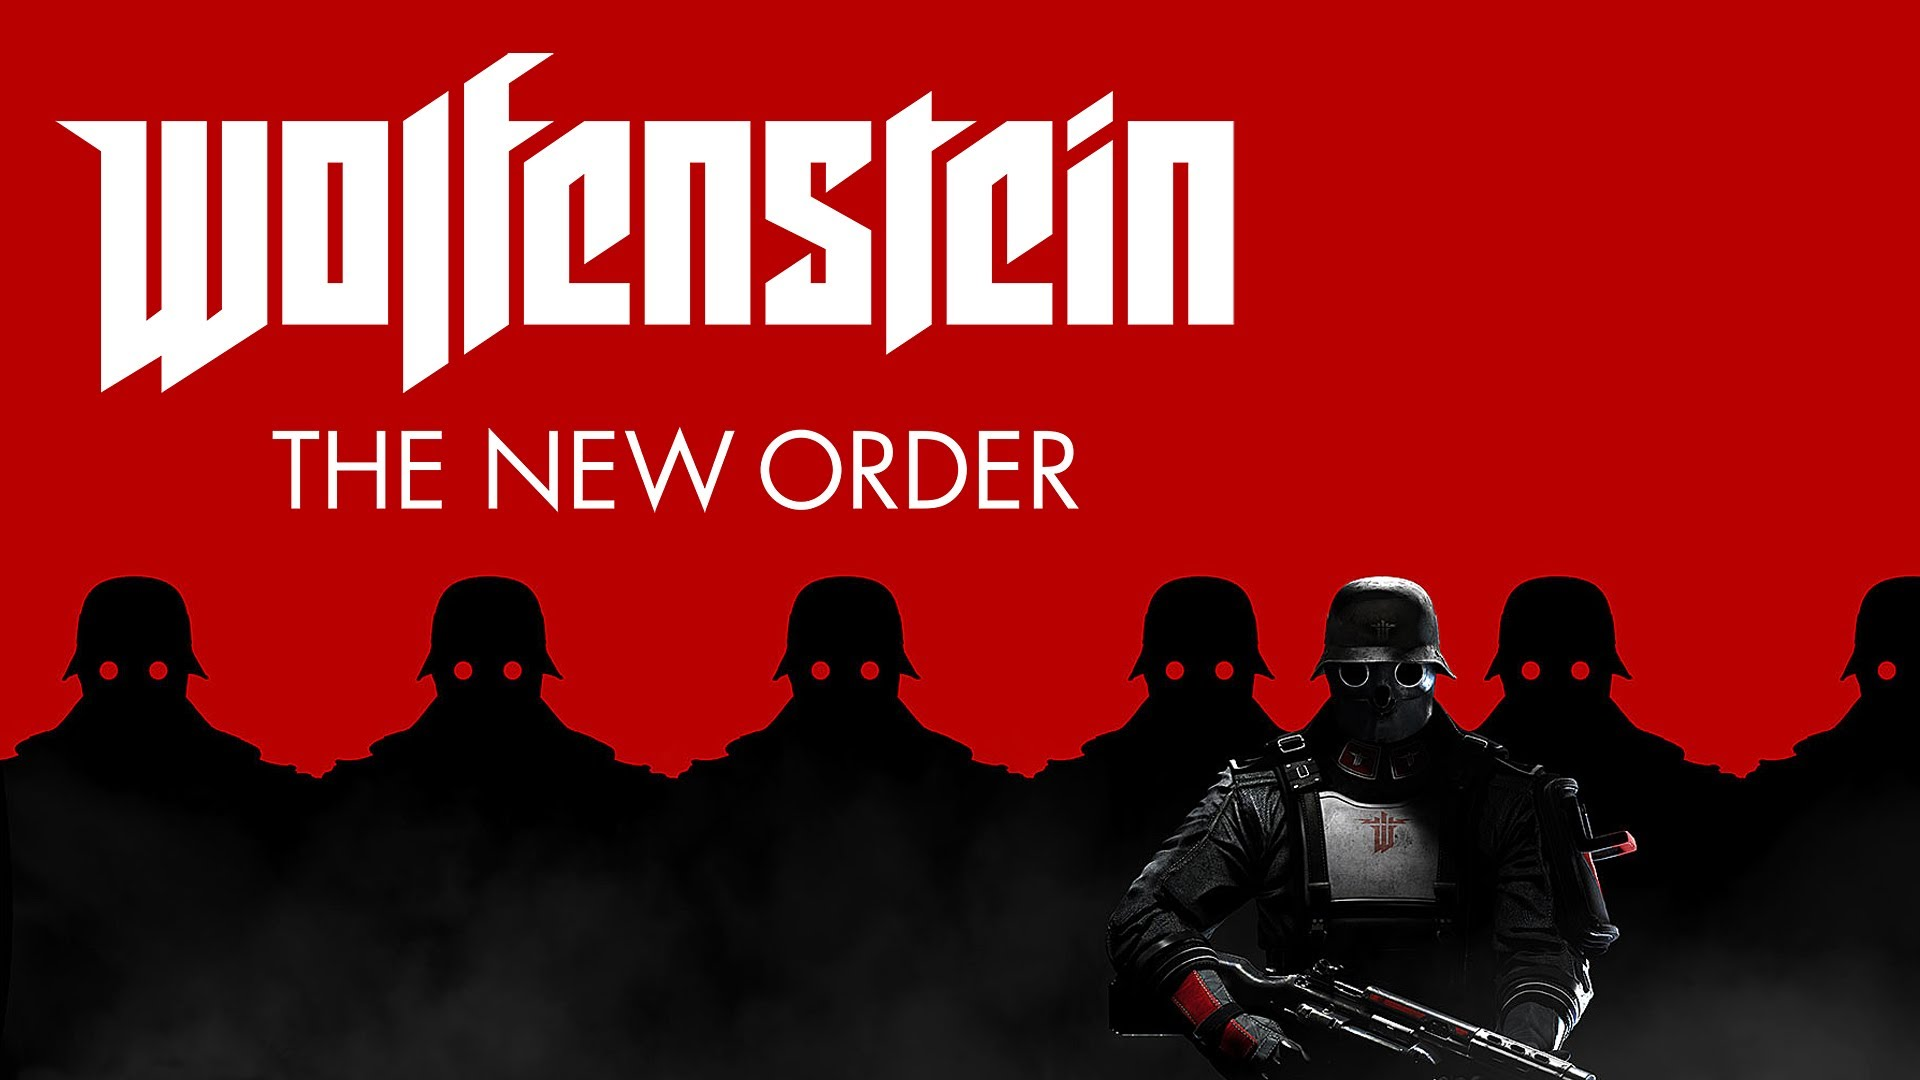 Iphone 5 Fall Wallpaper Wolfenstein The New Order Wallpapers Gamerbolt